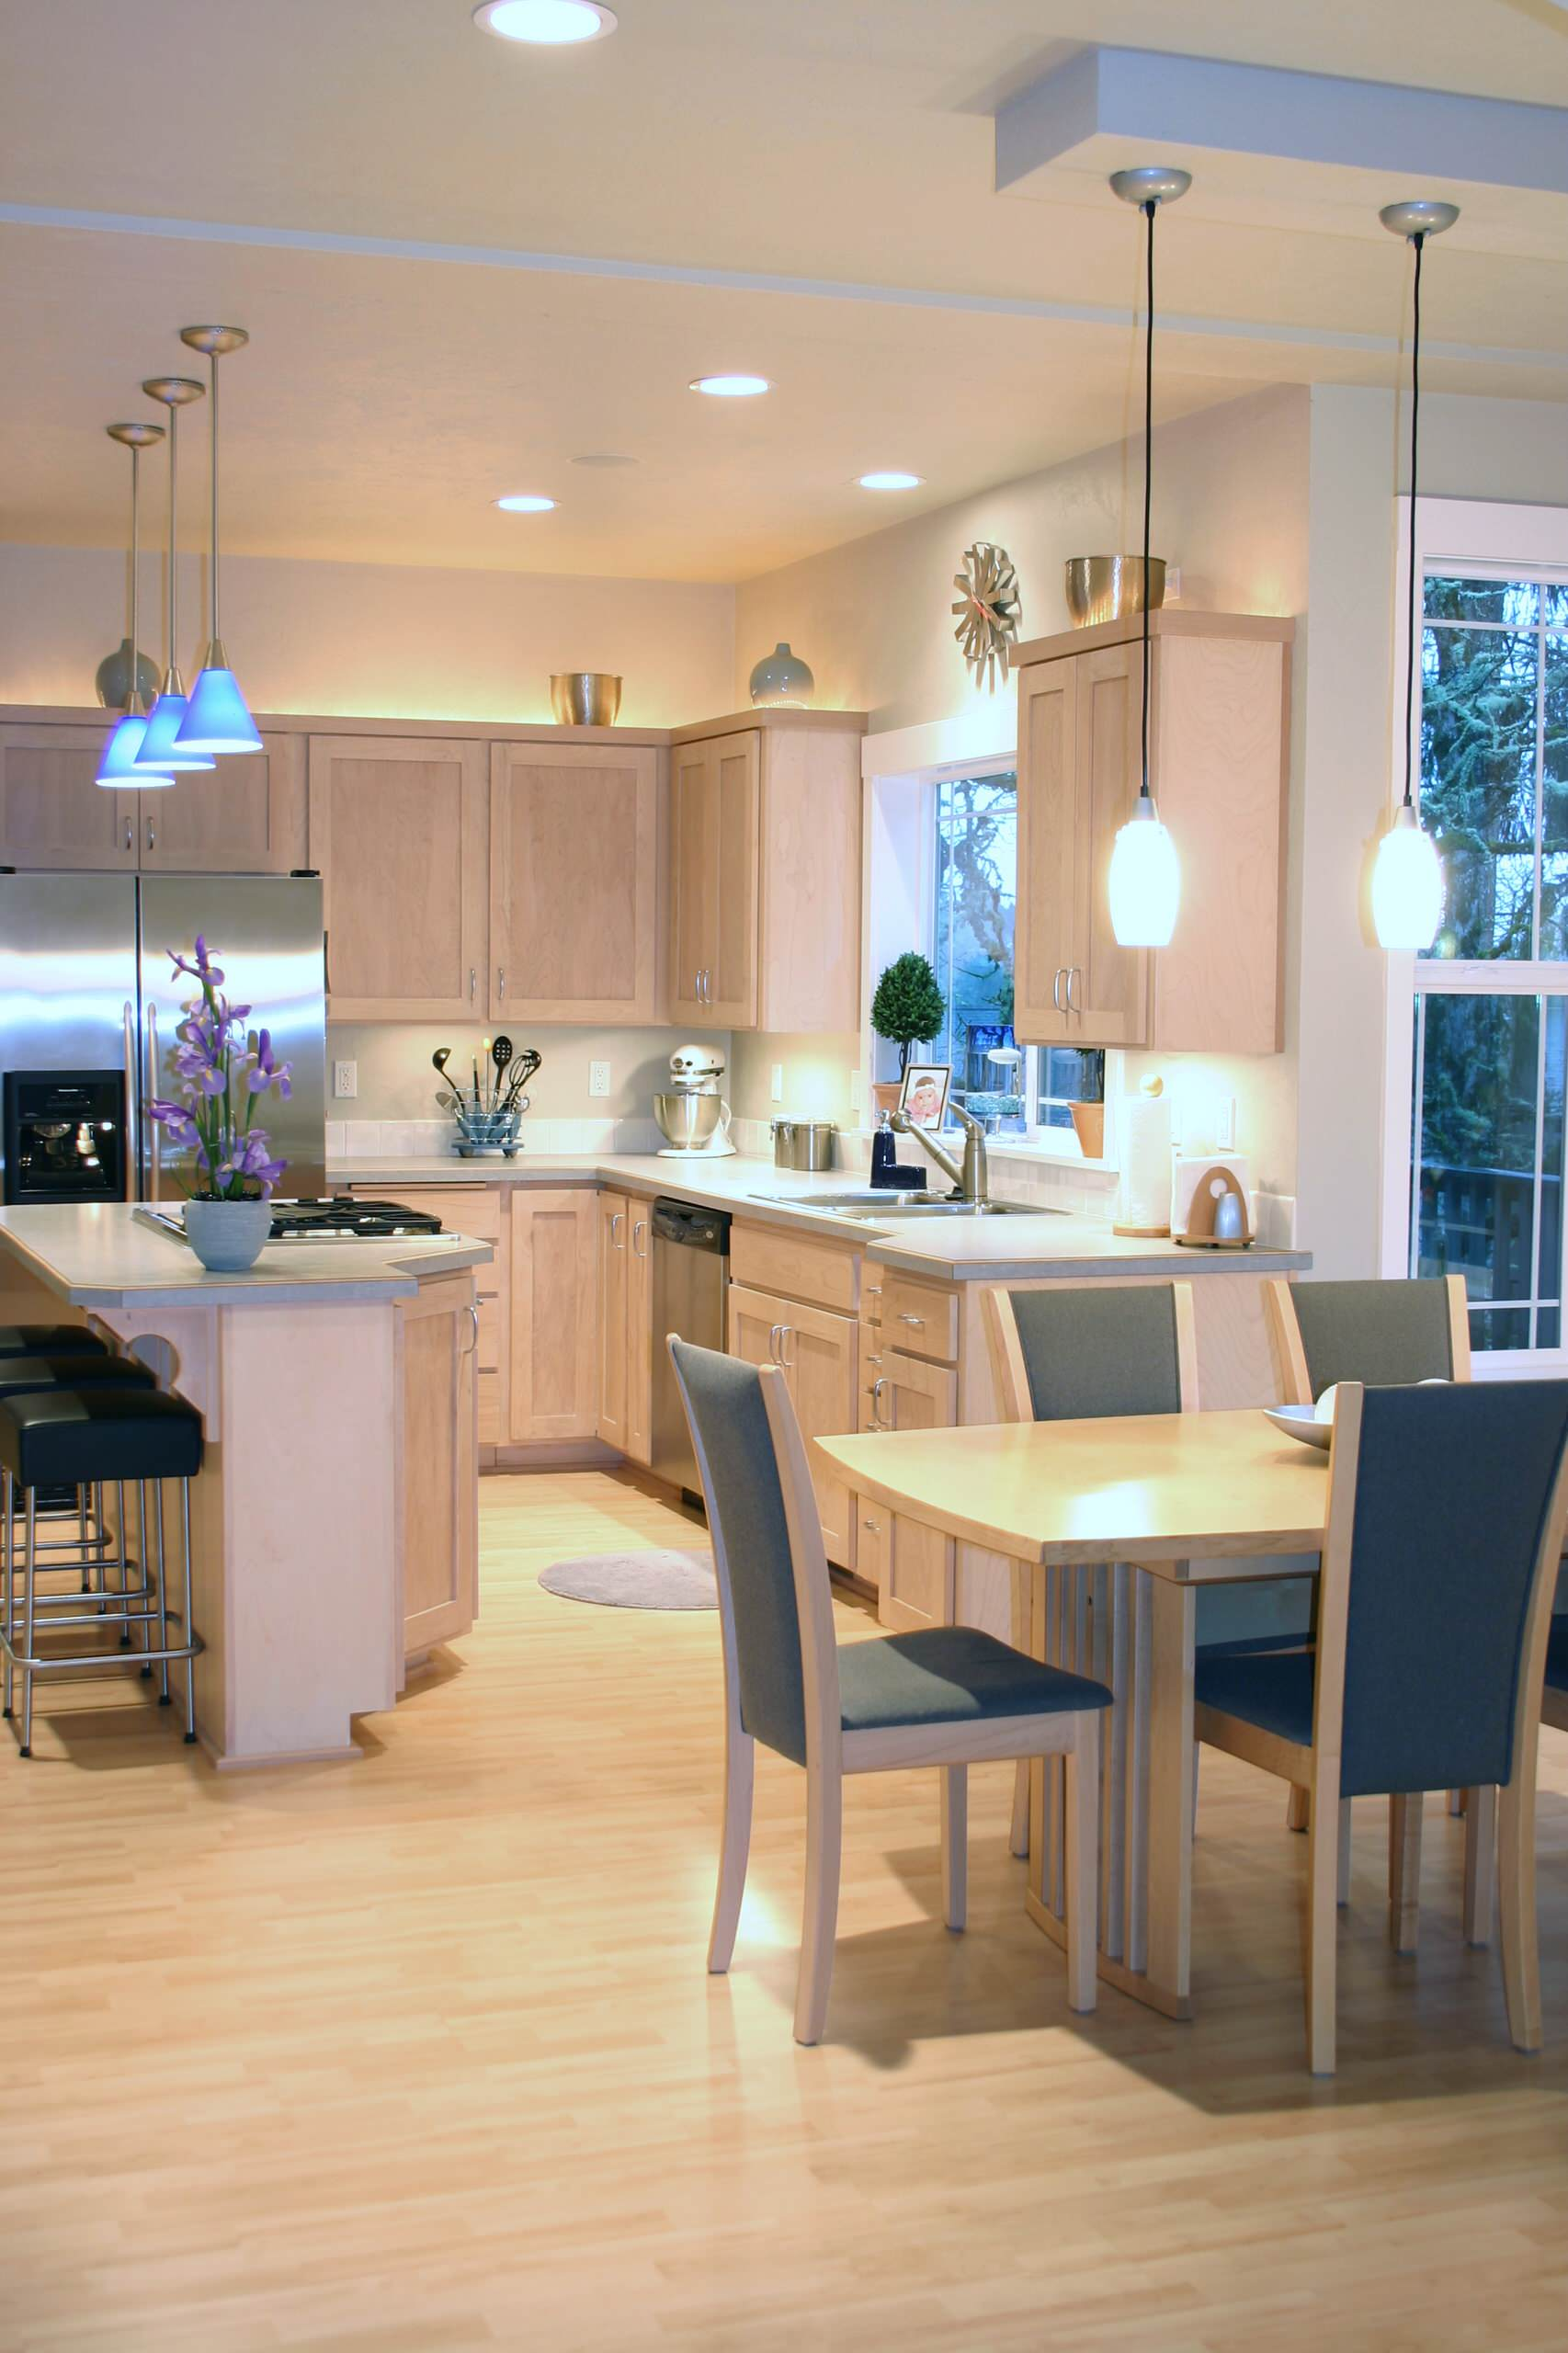 A WellLit Kitchen Best Online Cabinets - Good lighting for kitchen